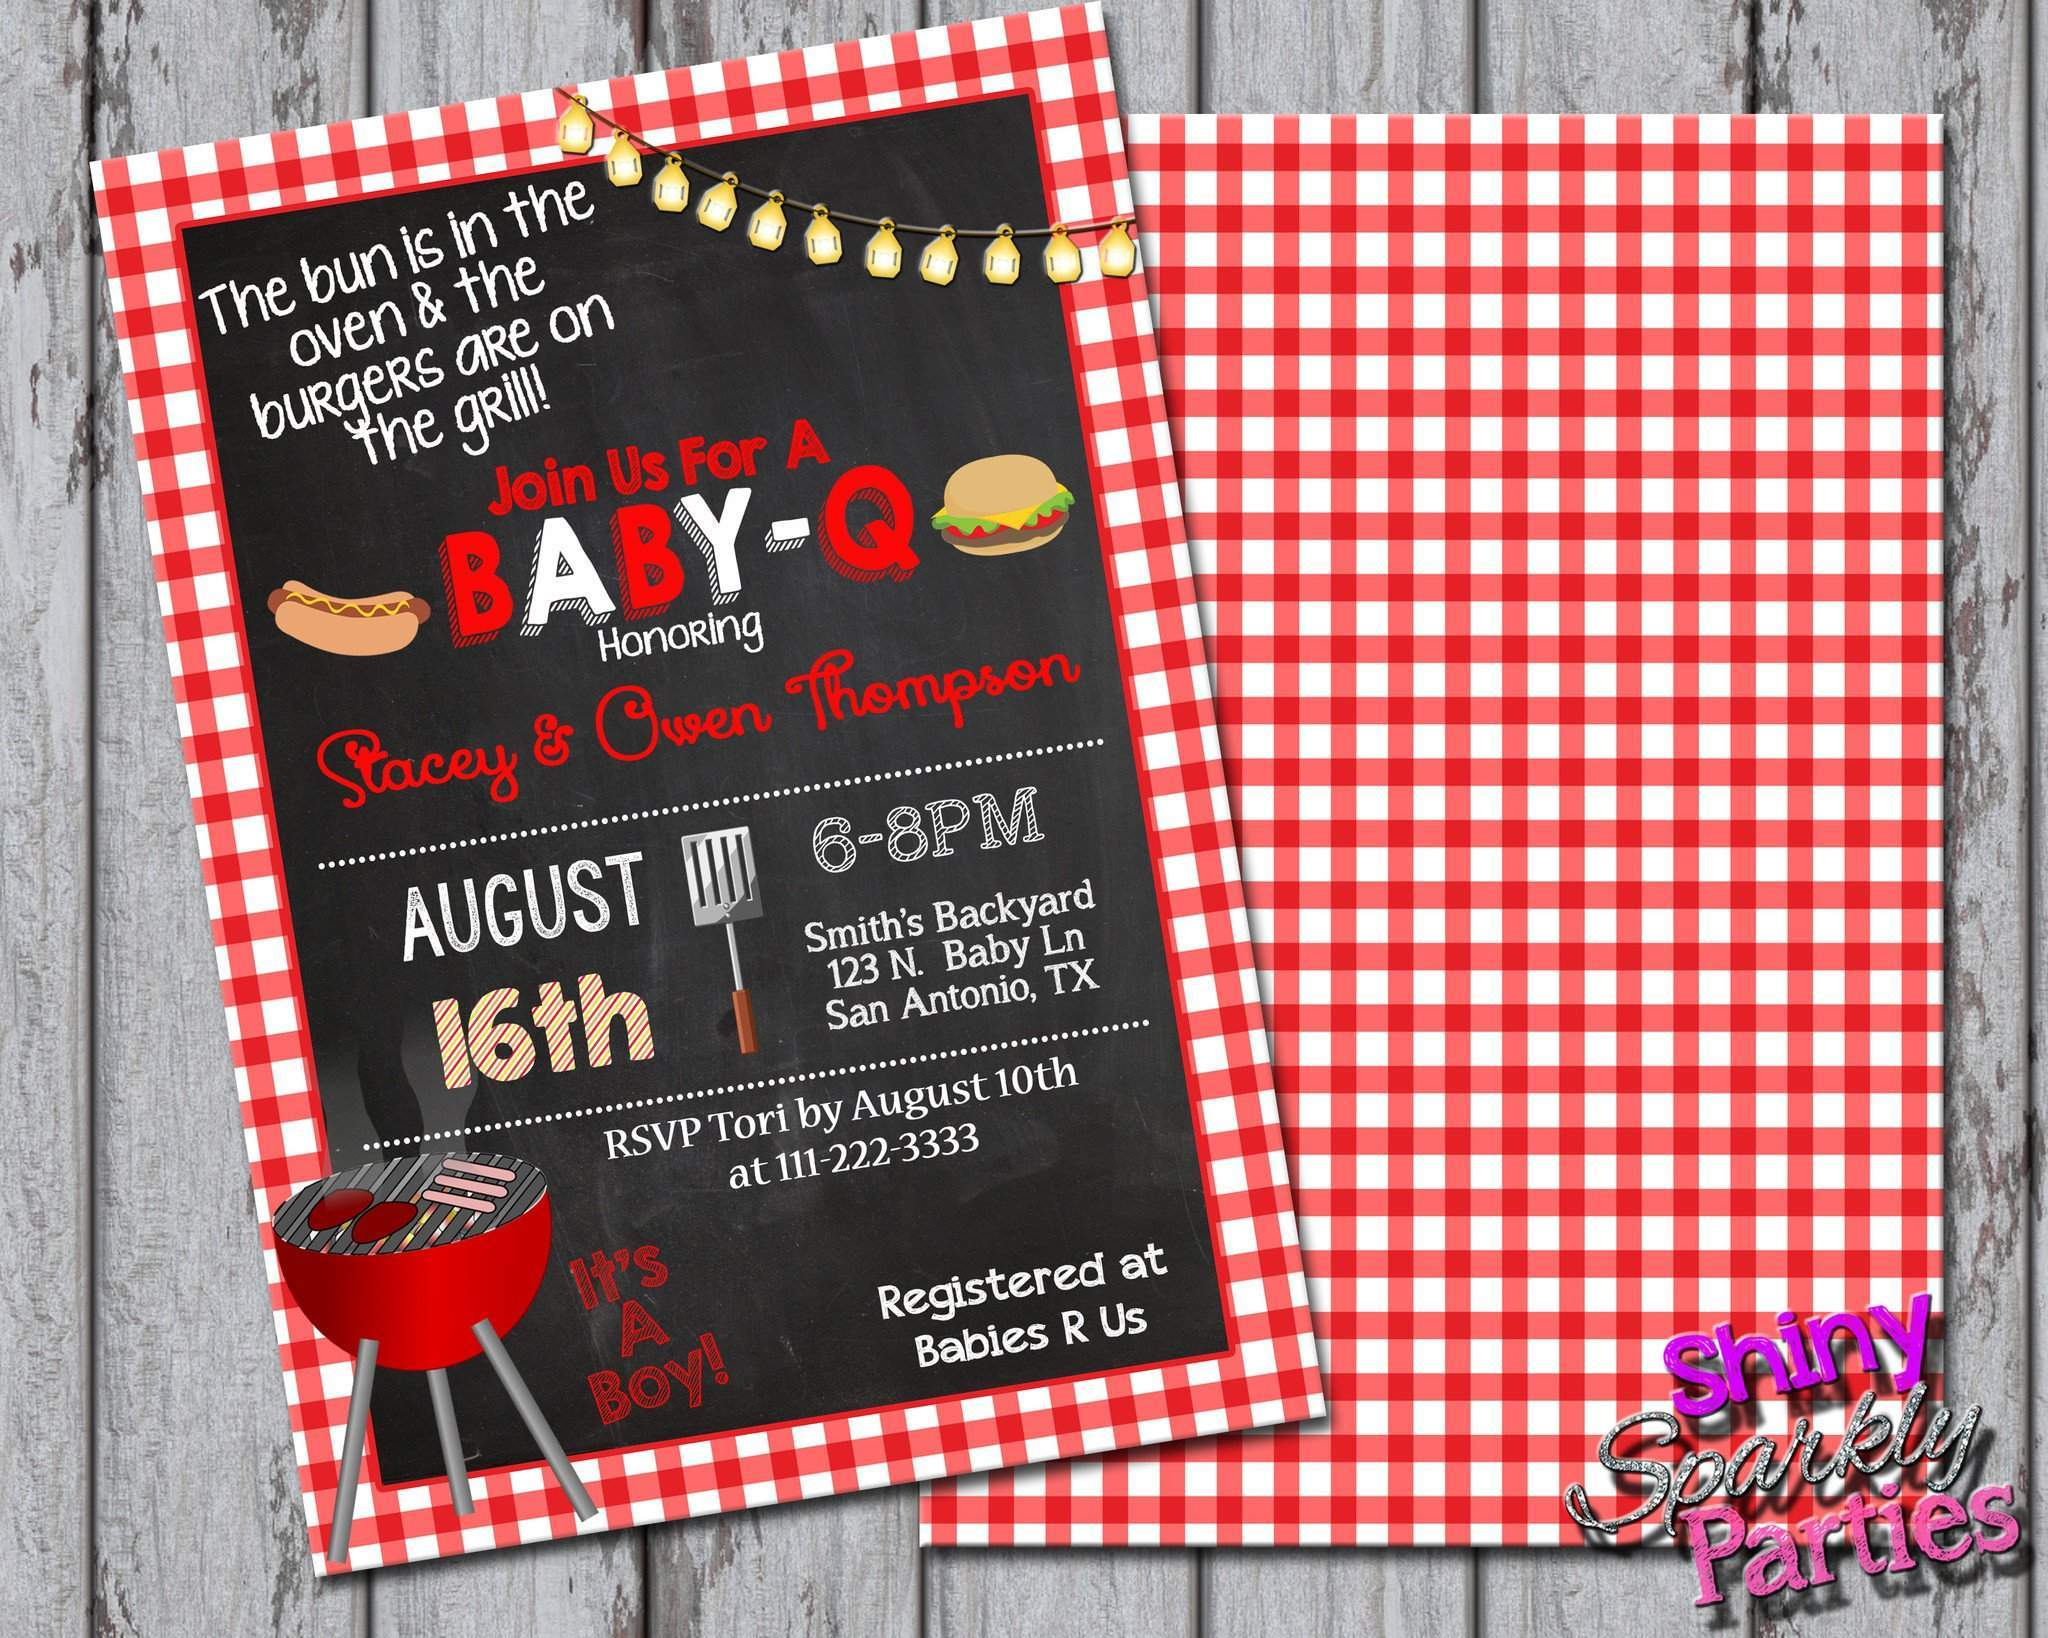 bbq baby shower invitations - Ukran.soochi.co